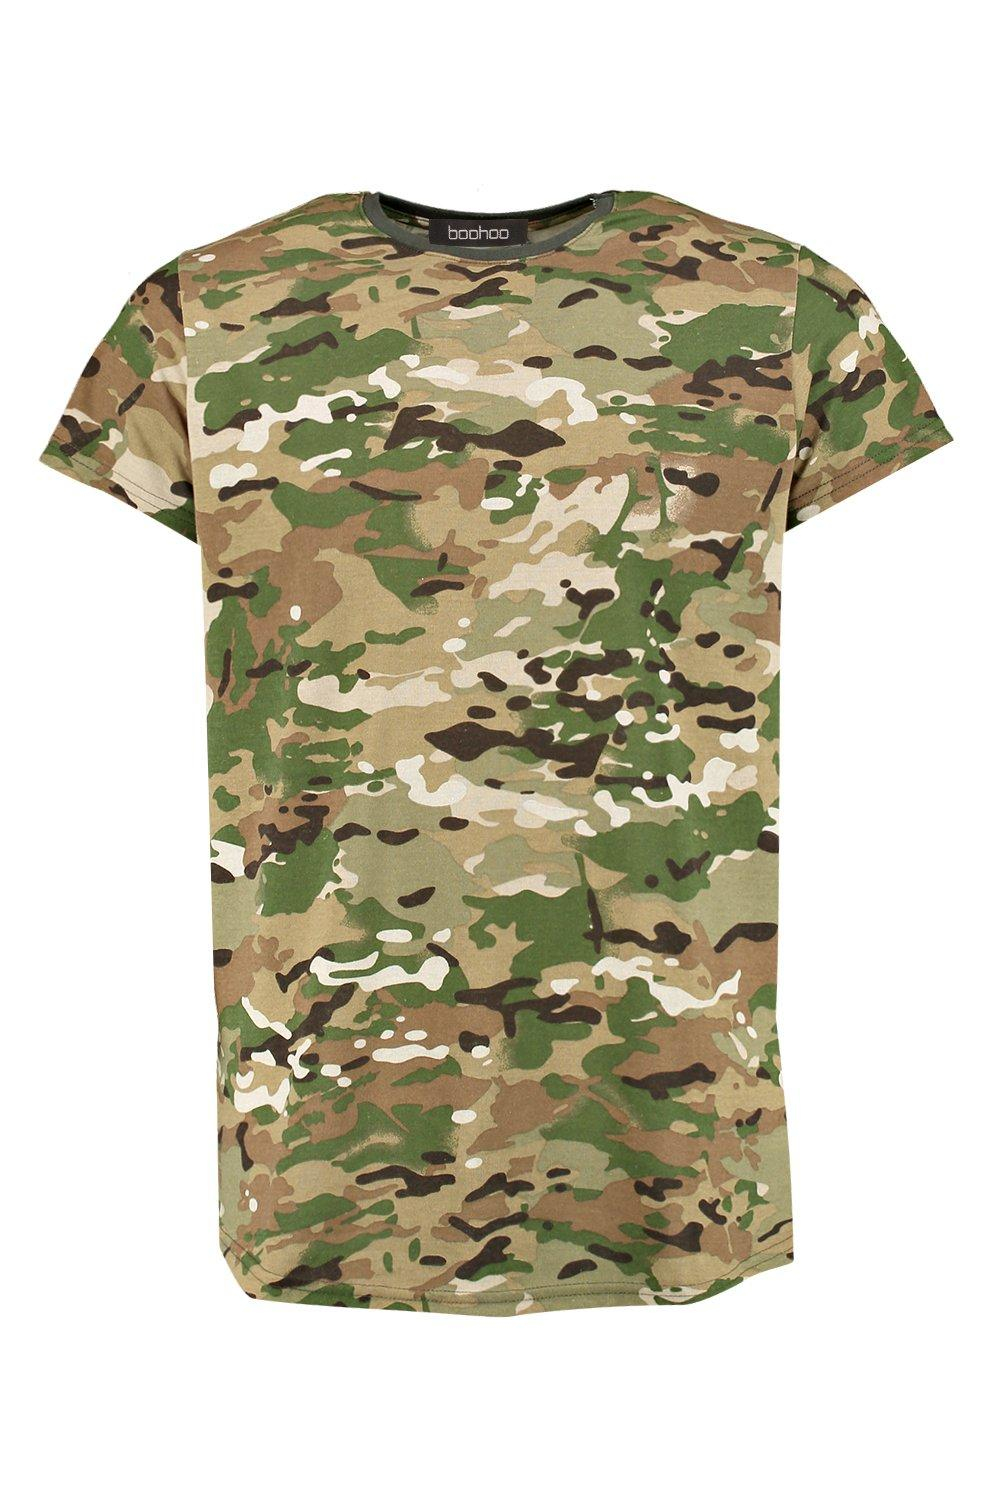 Lyst boohoo camo print t shirt in green for men for Camo print t shirt